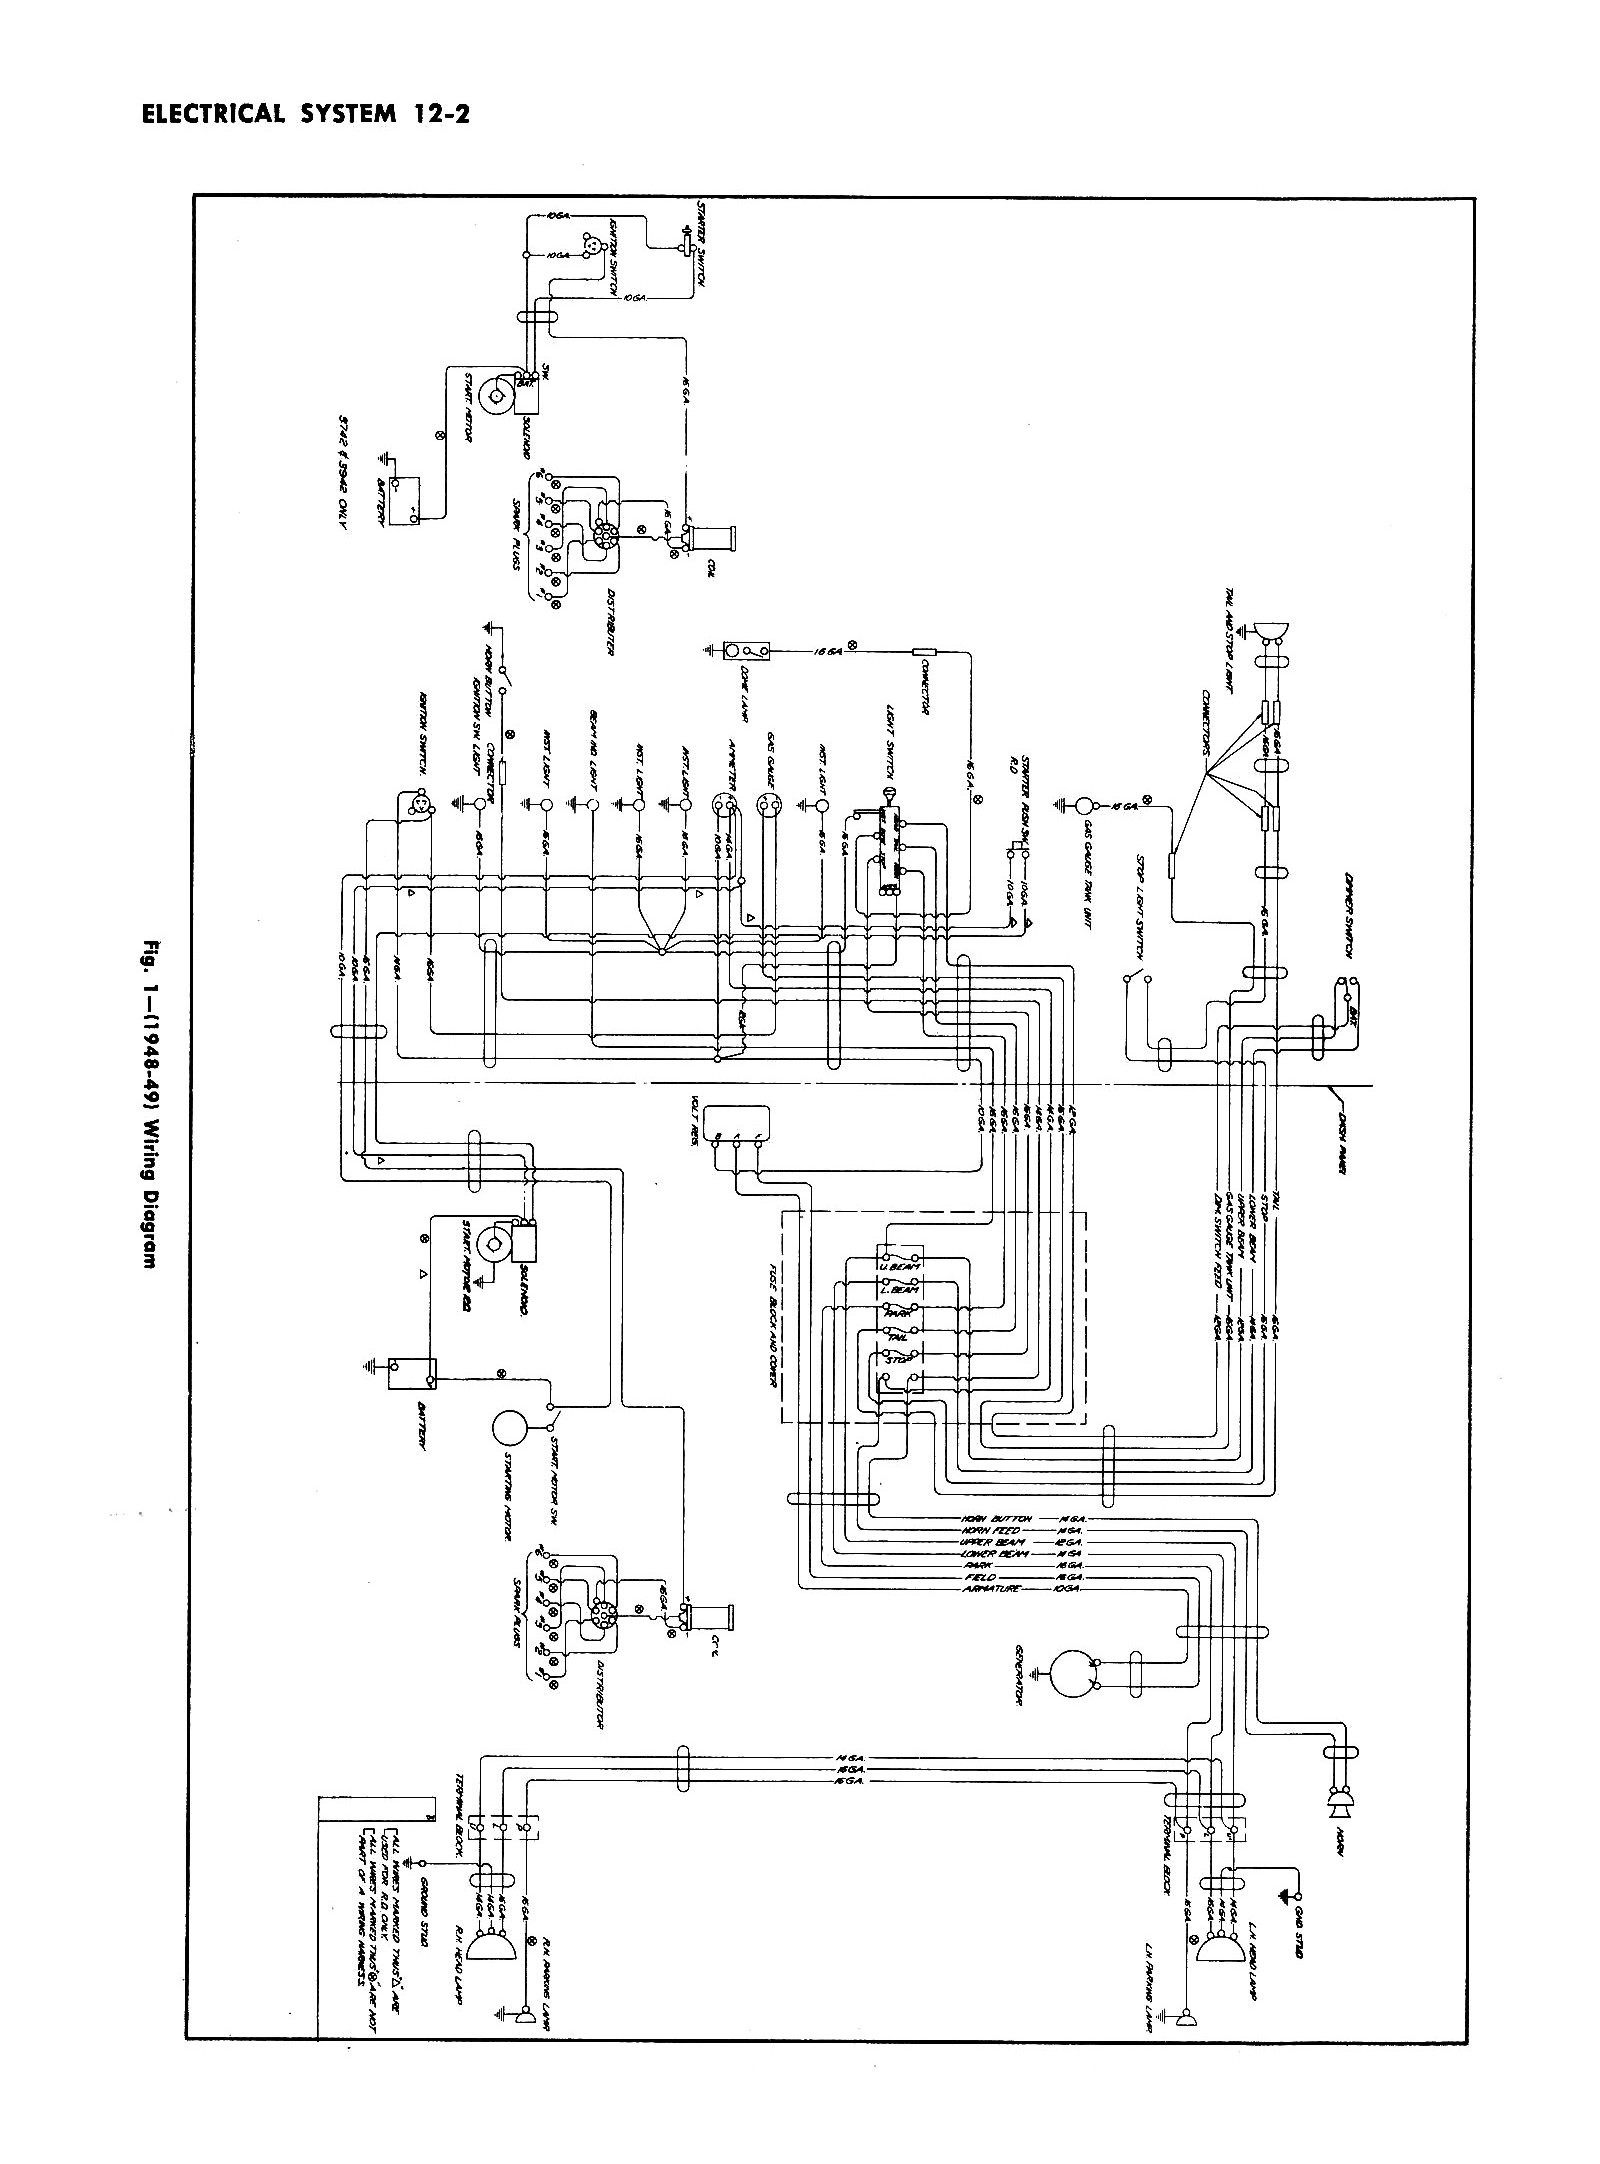 48car chevy wiring diagrams 1960 impala wiring diagram at soozxer.org